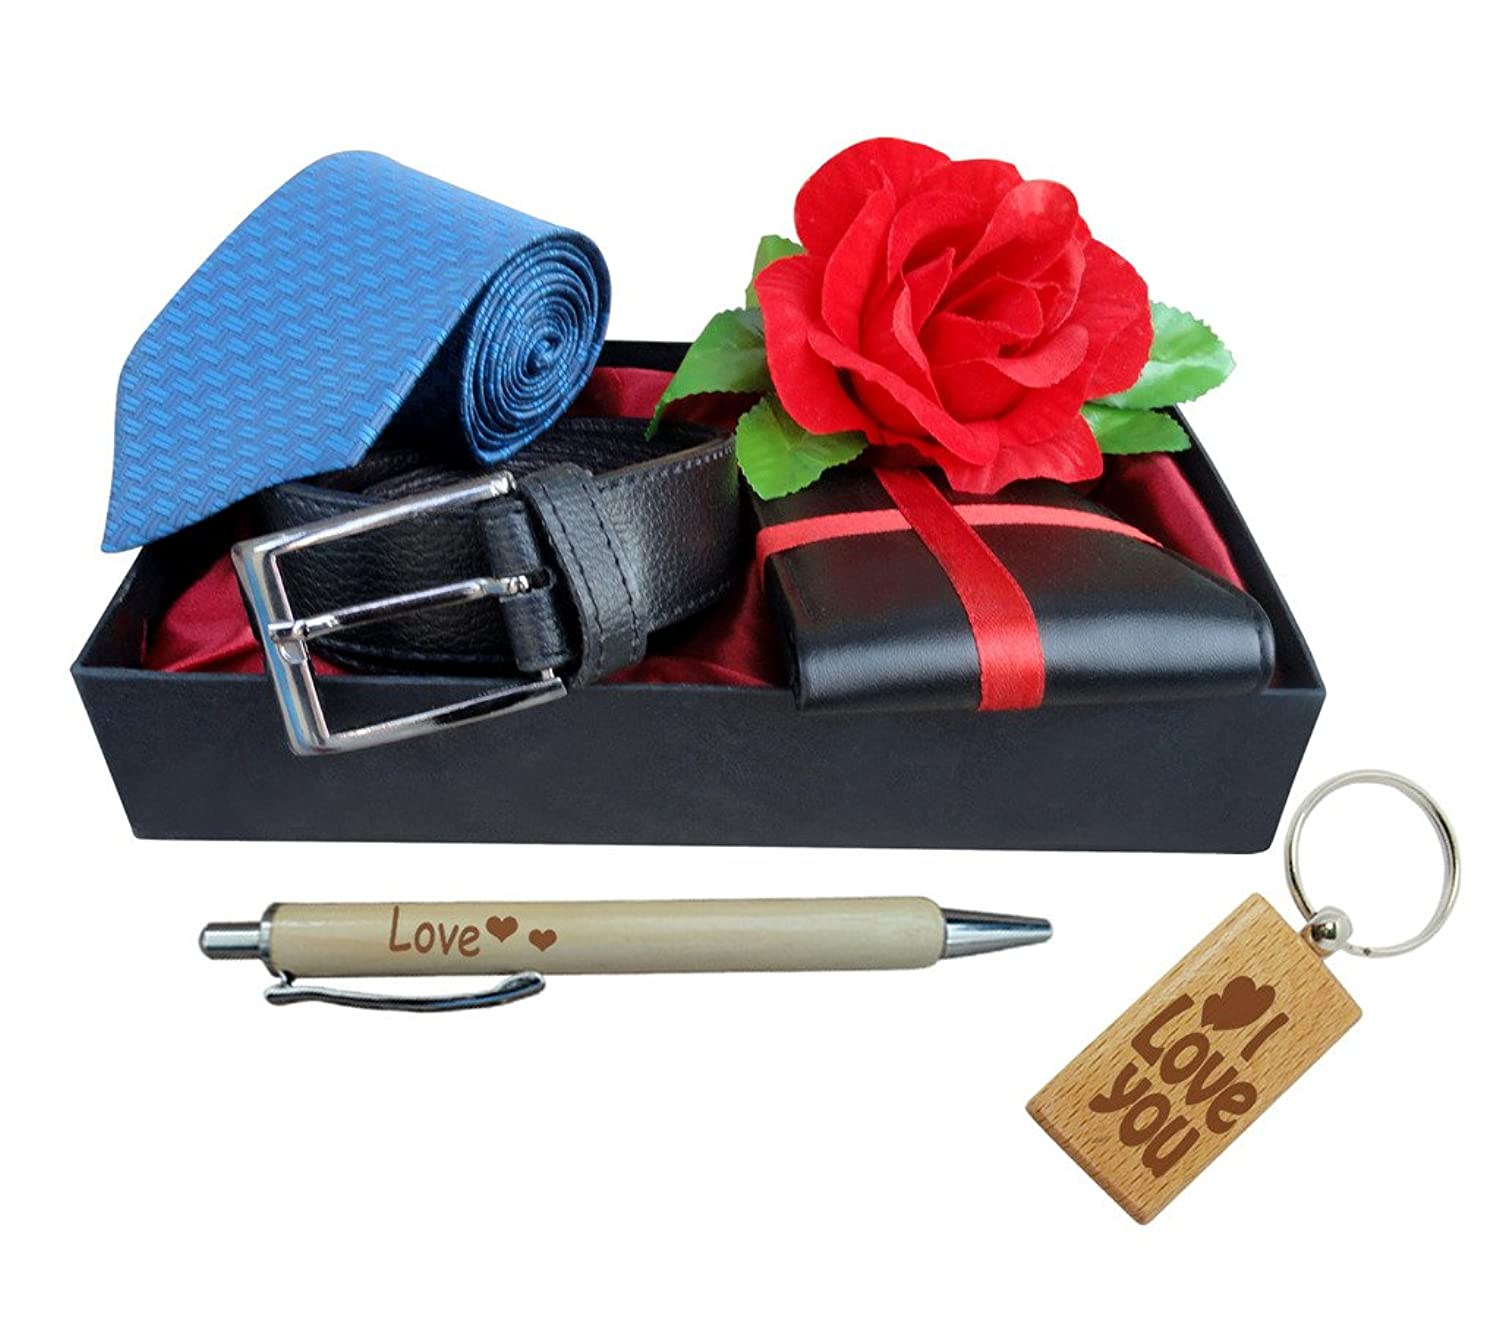 TiedRibbons Gifts for Husband Belt Wallet Rose Tie Pen and